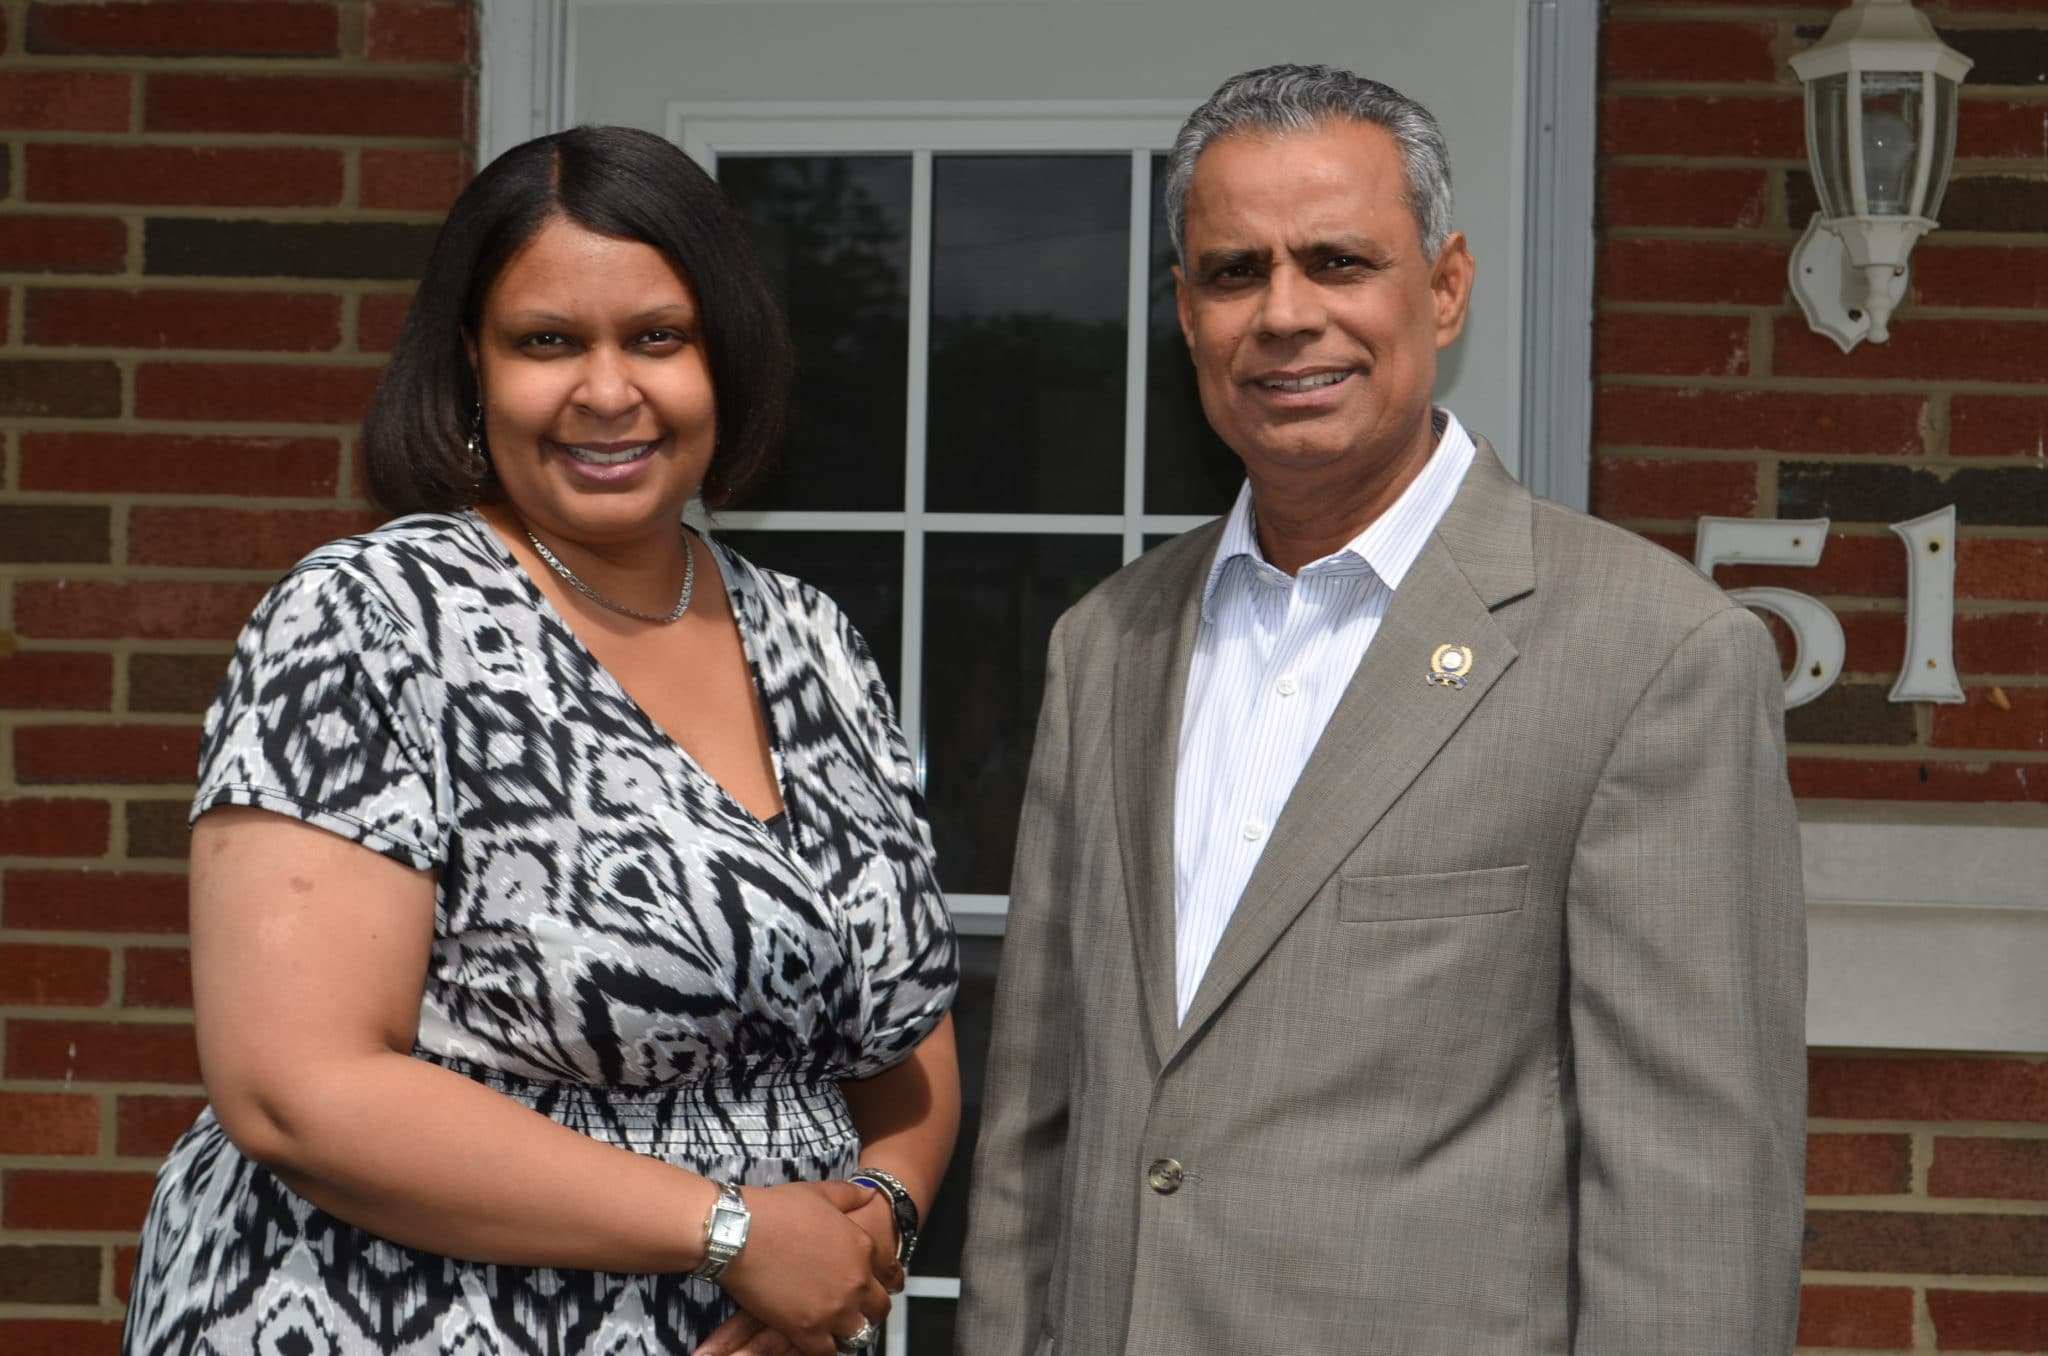 Community Options Executive Director Maria Bowles & Assemblyman Upendra Chivukula outside of our Monroe, NJ home.